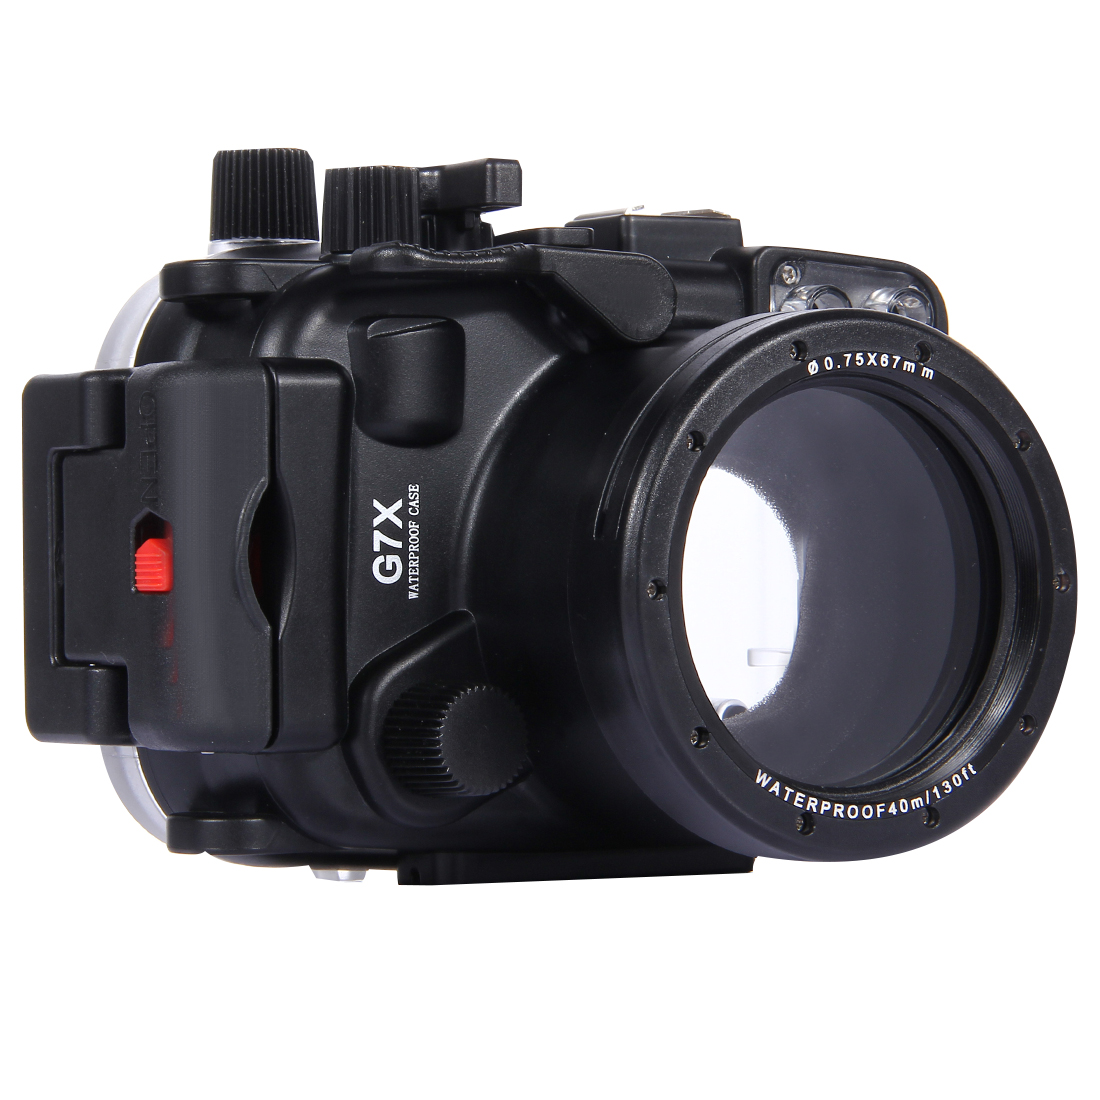 PULUZ PU7007 40m Waterproof Under Water Swimming Diving Camera Housing Case for Canon G7 X printio кружка цветная внутри